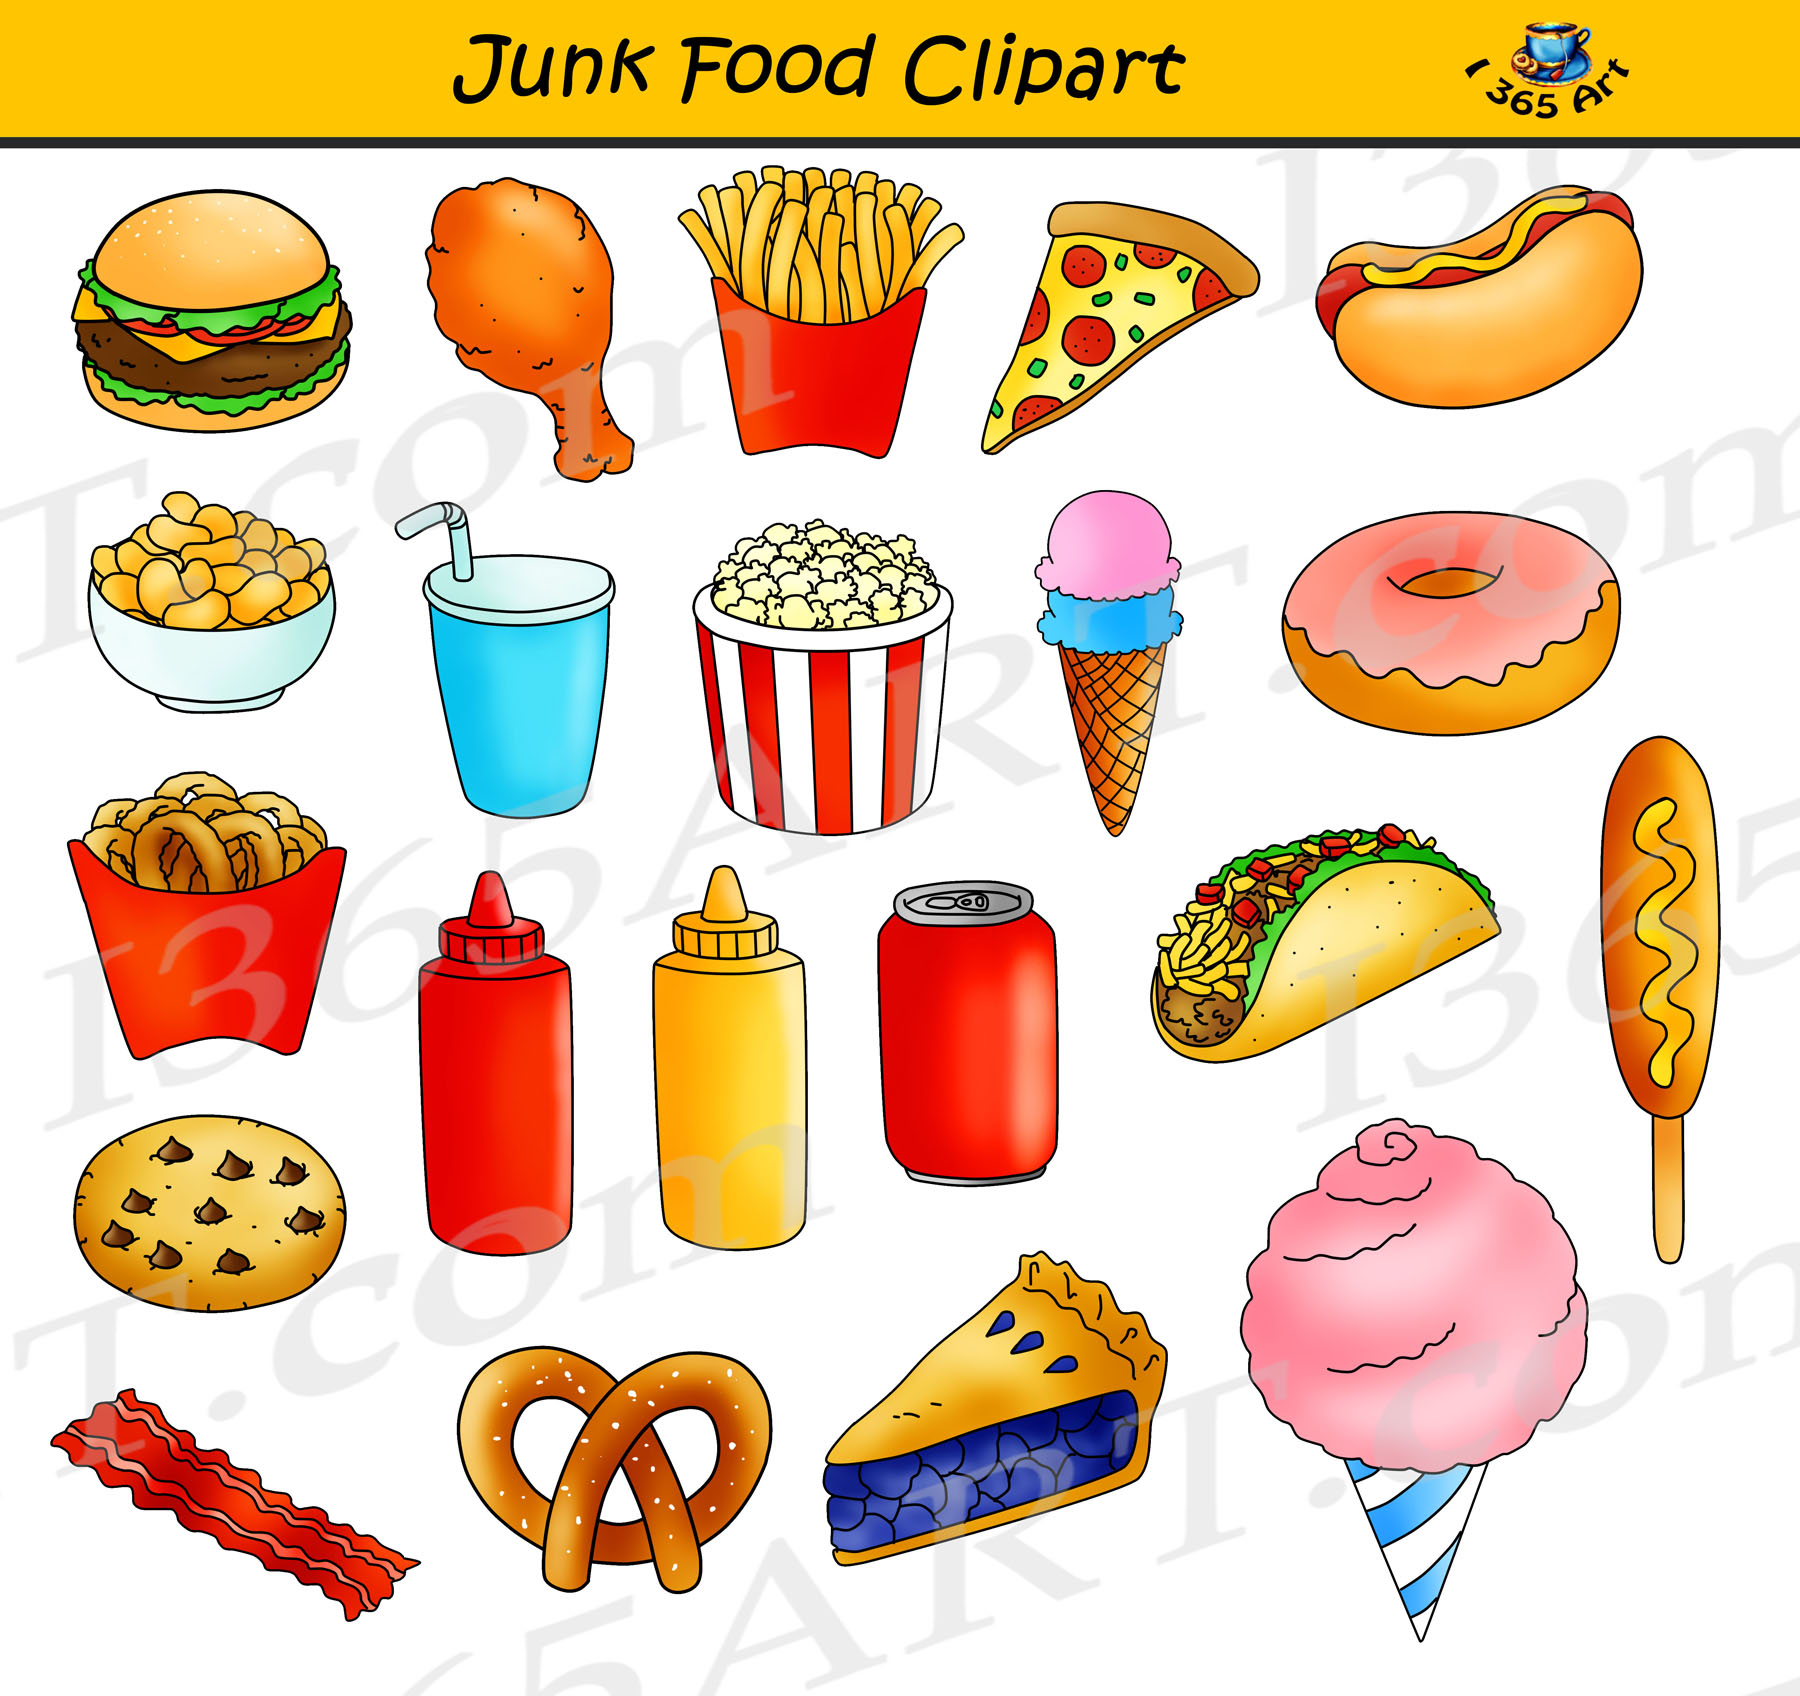 junk food clipart  fast food graphics commercial use clipart junk food clipart black and white junk food clipart